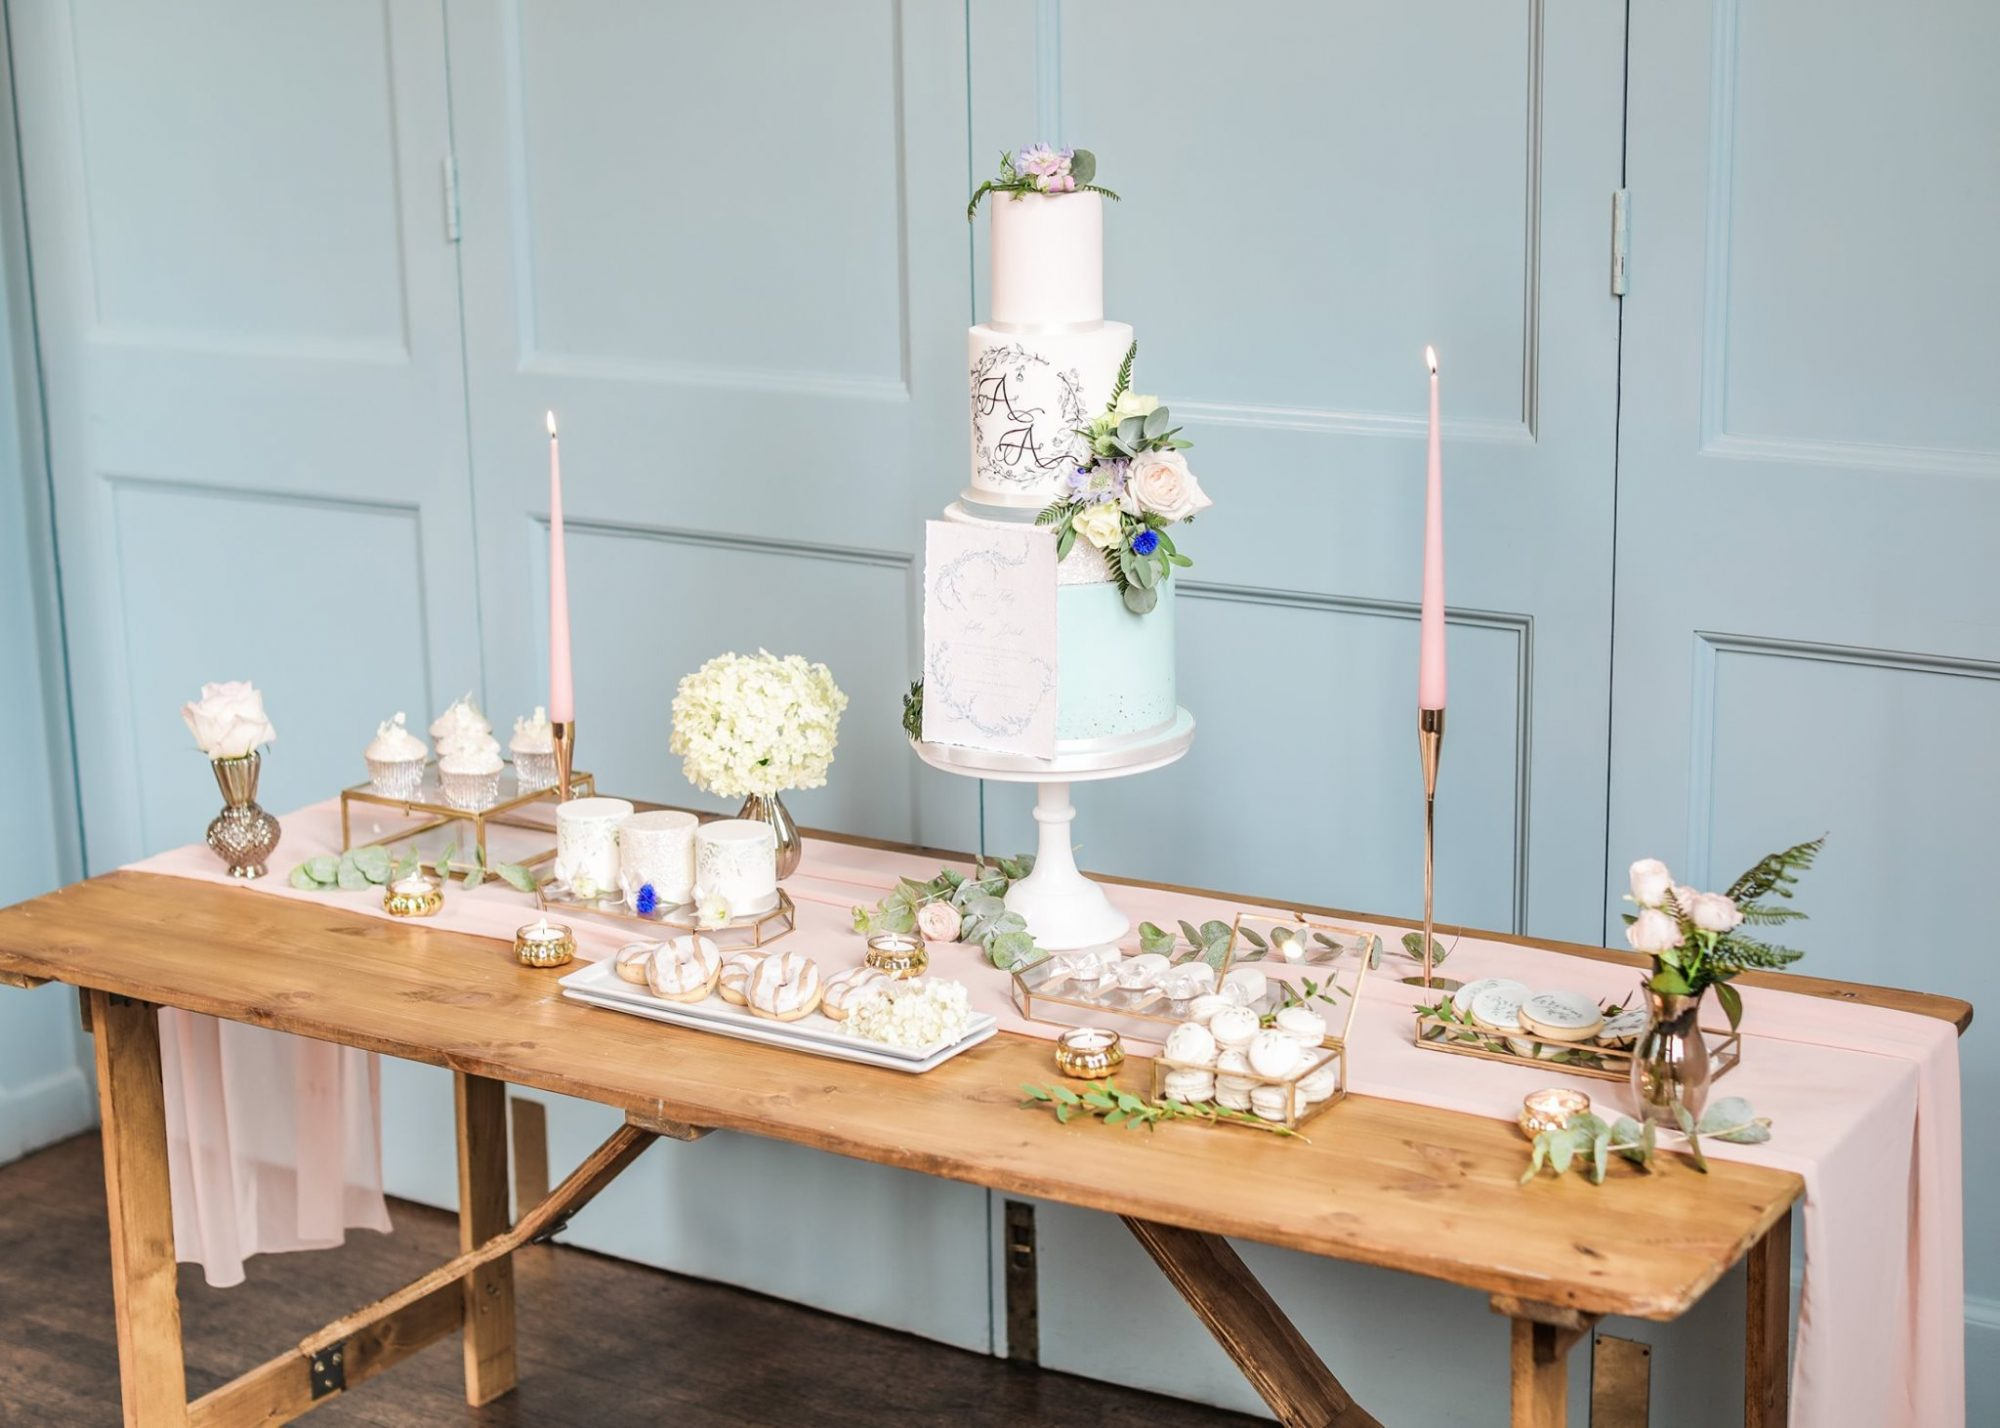 Pale blue and white dessert table